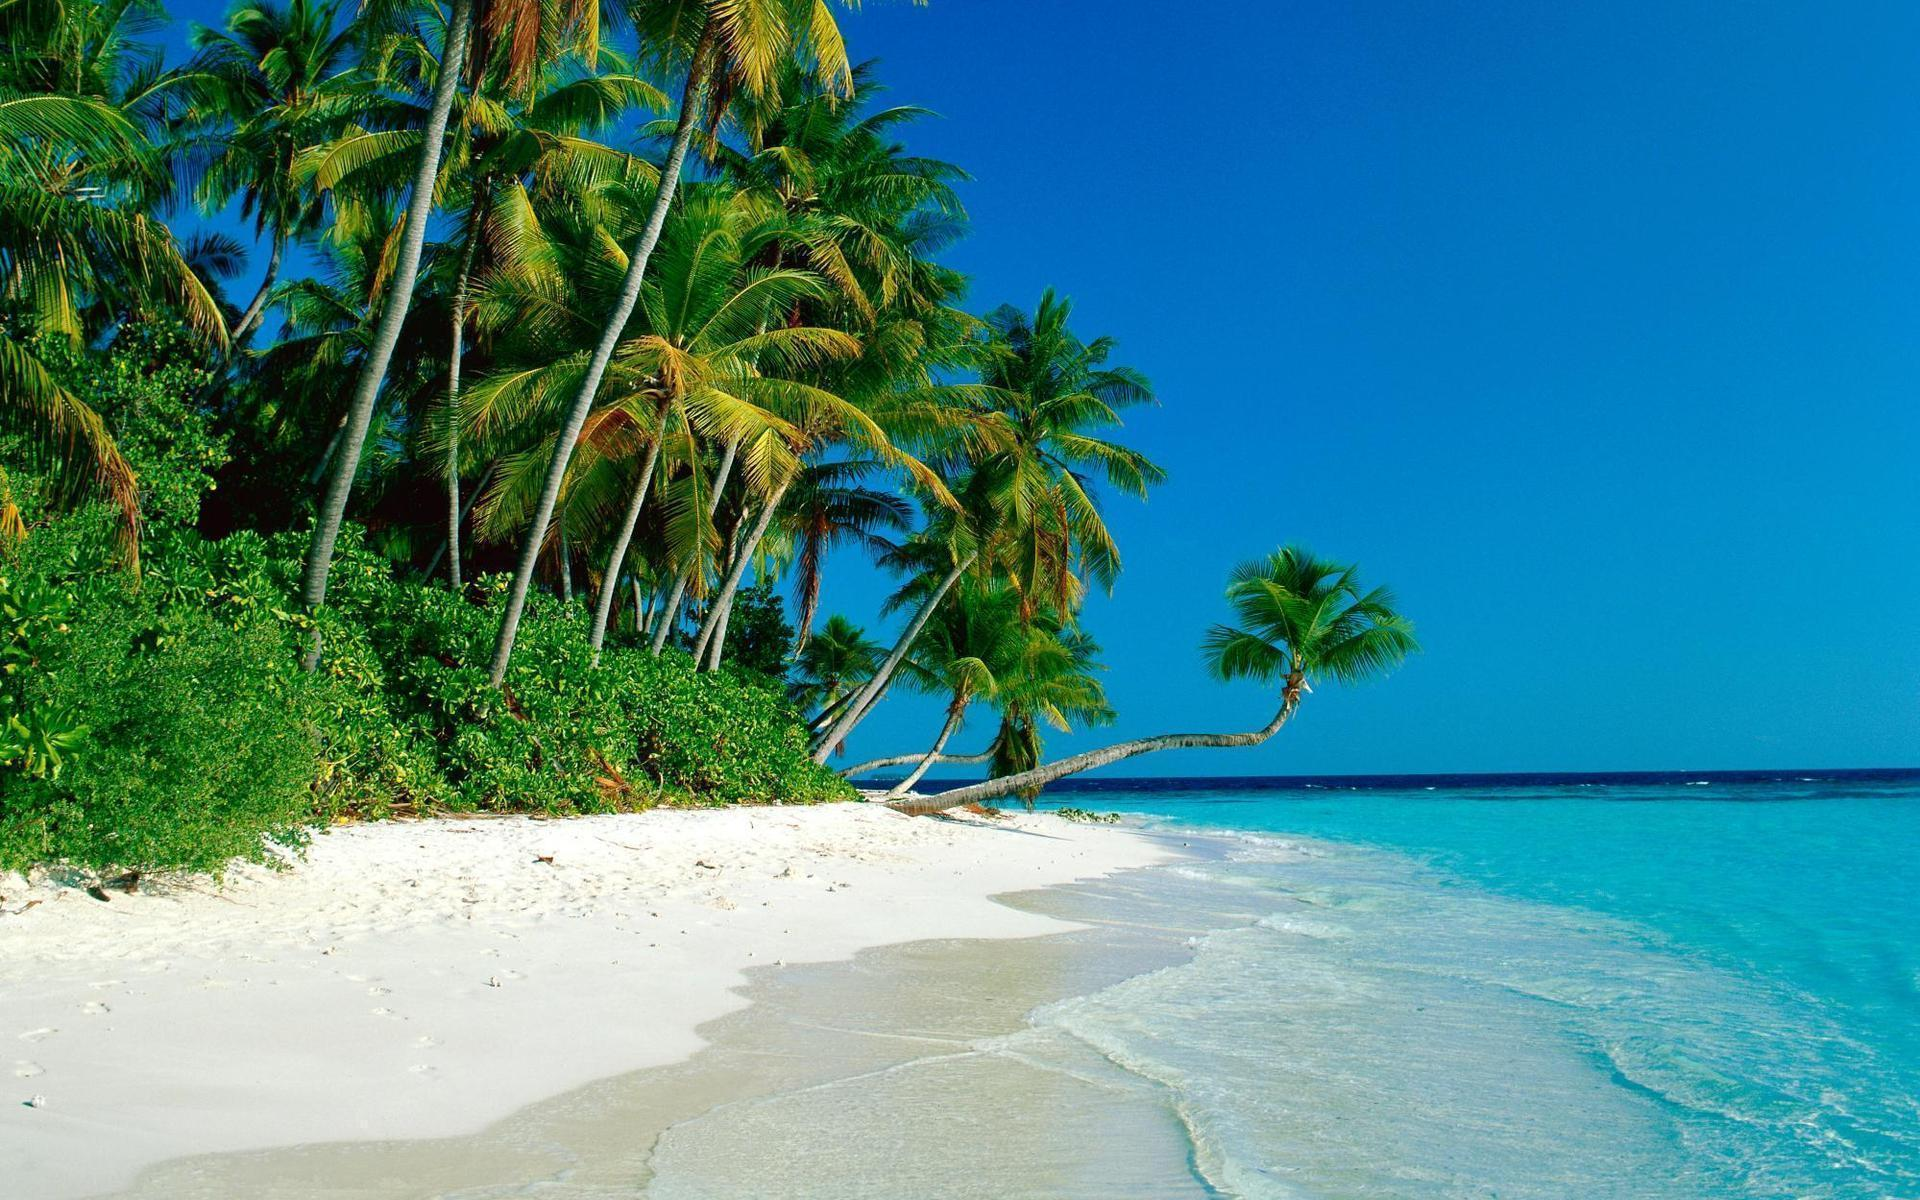 Hd Tropical Island Beach Paradise Wallpapers And Backgrounds: Tropical Island Wallpapers